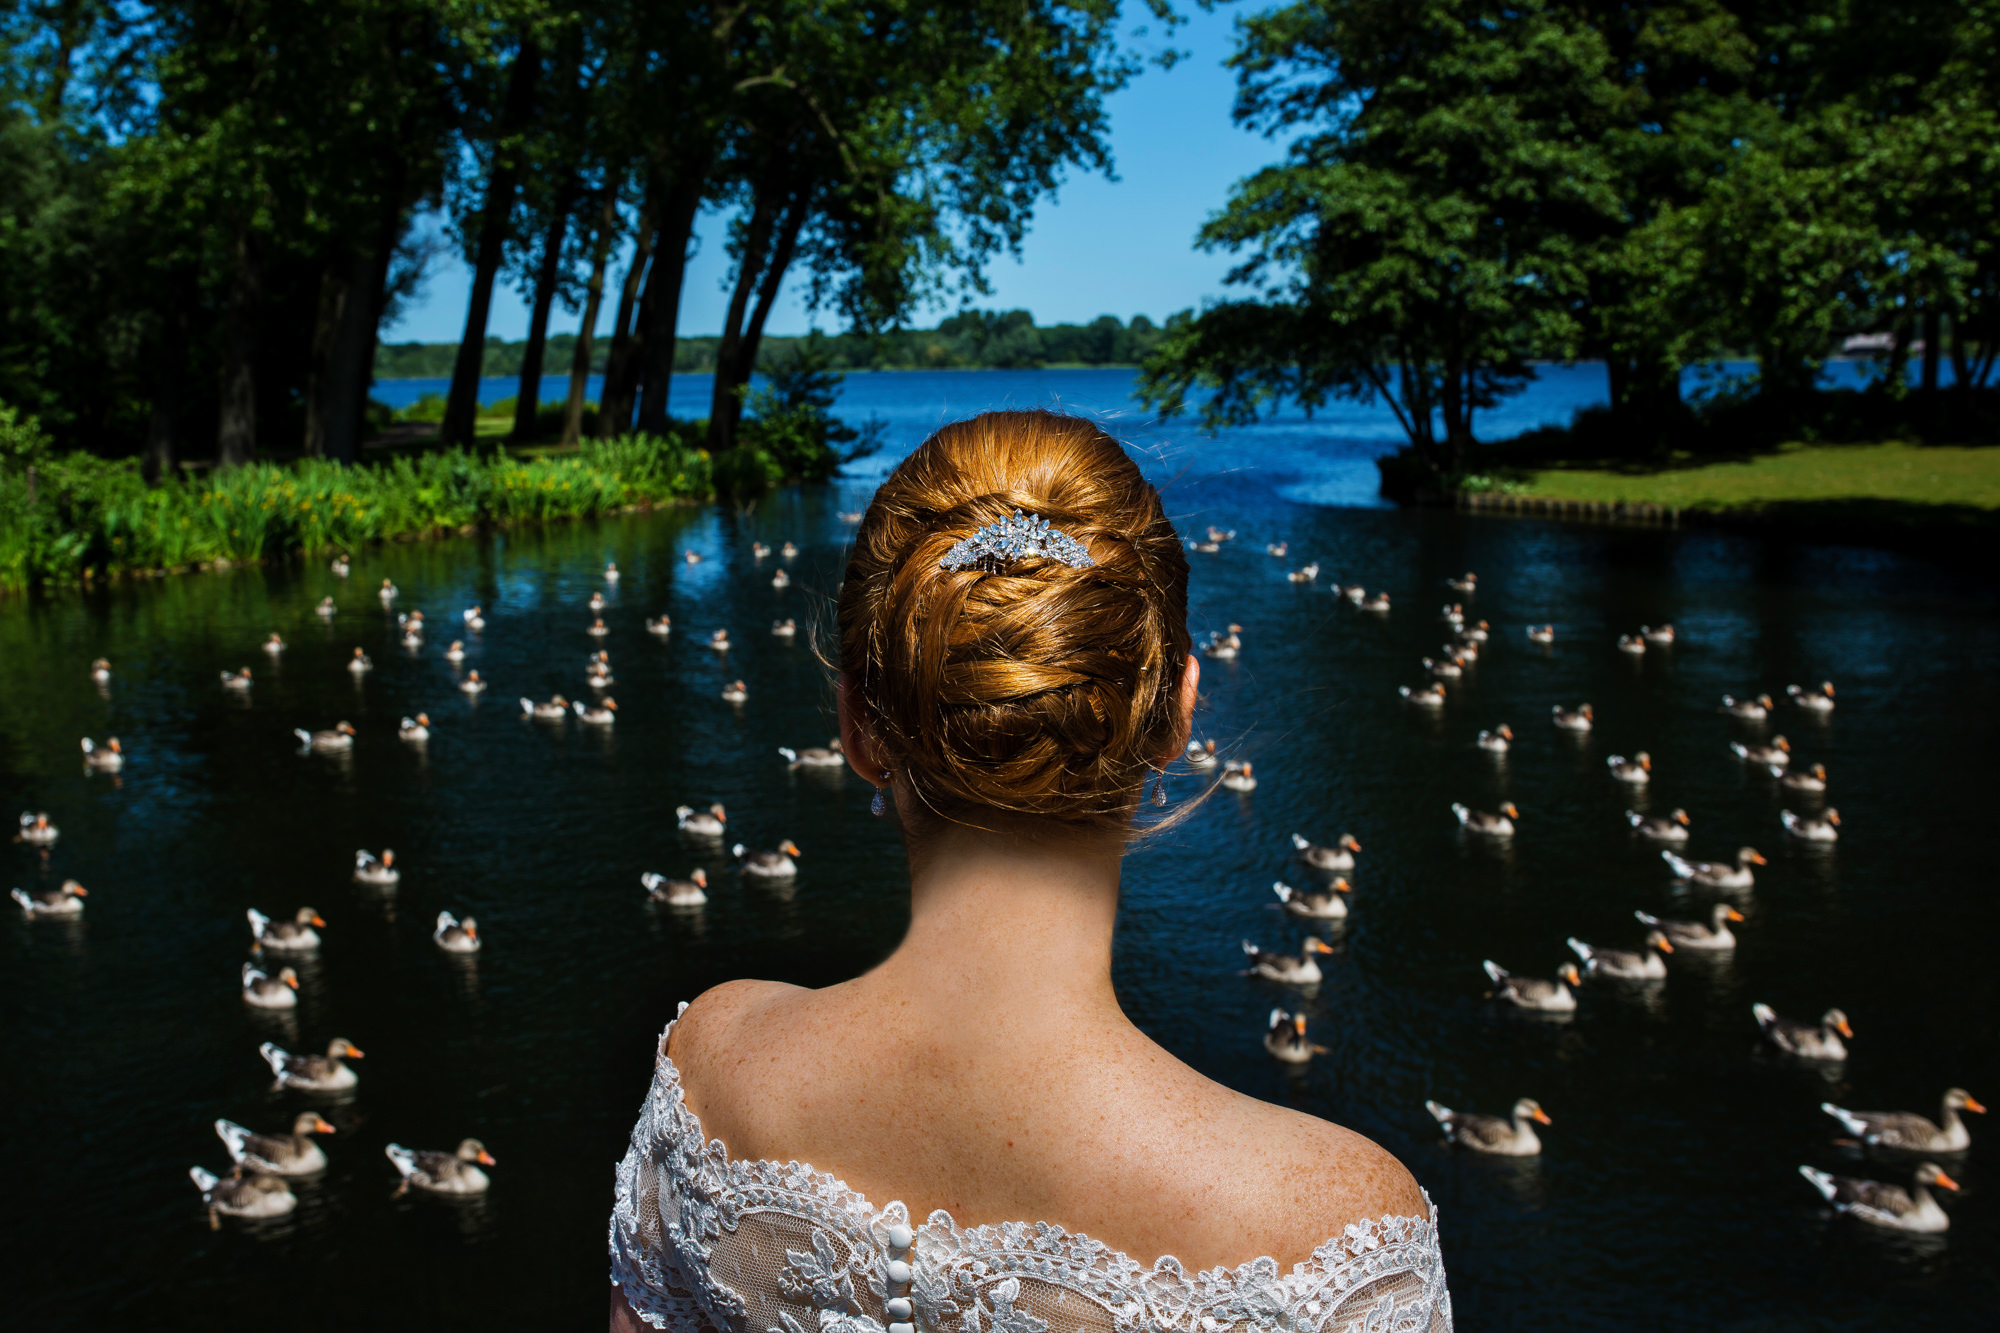 Portrait of red-haired bride from behind her head - photo by Isabelle Hattink - Netherlands